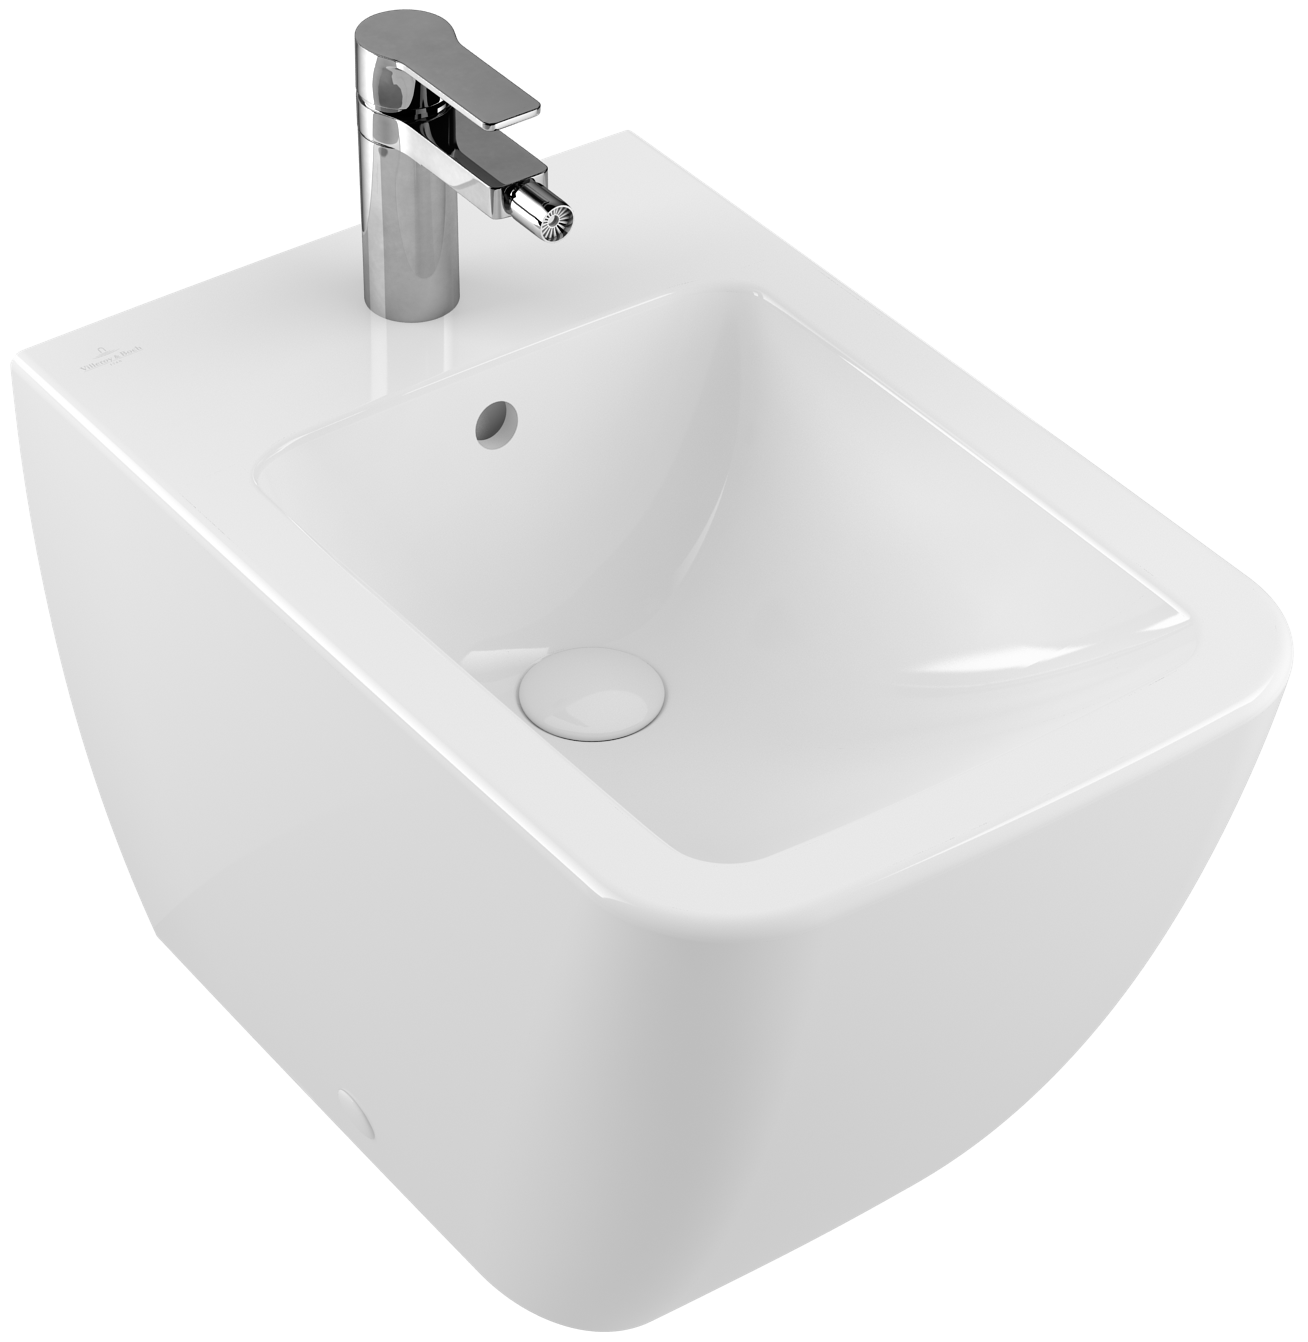 Venticello bidet angulaire 441200 villeroy boch - What is a bidet used for ...